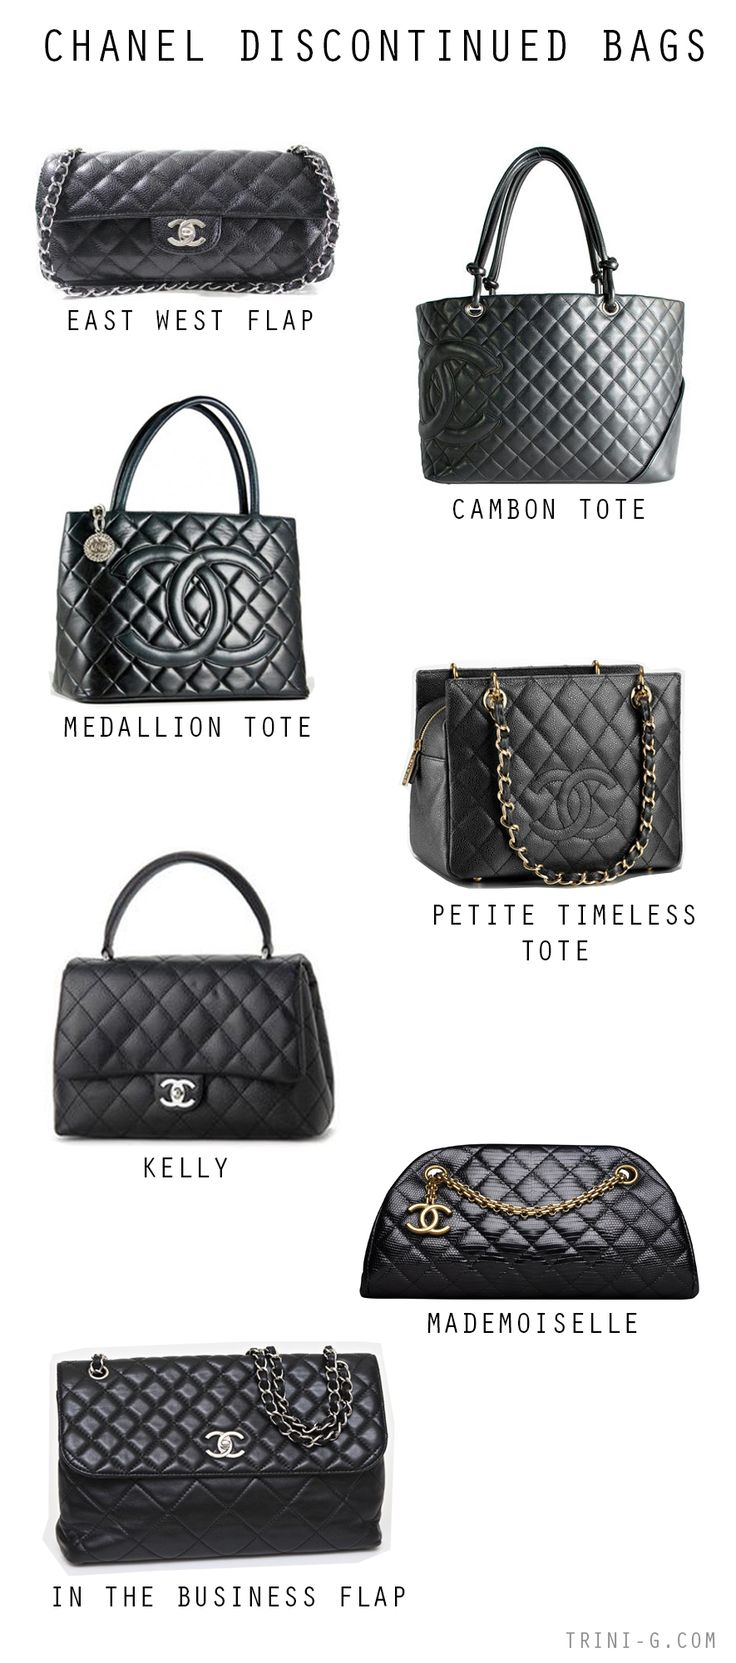 Trini blog | Chanel discontinued bags